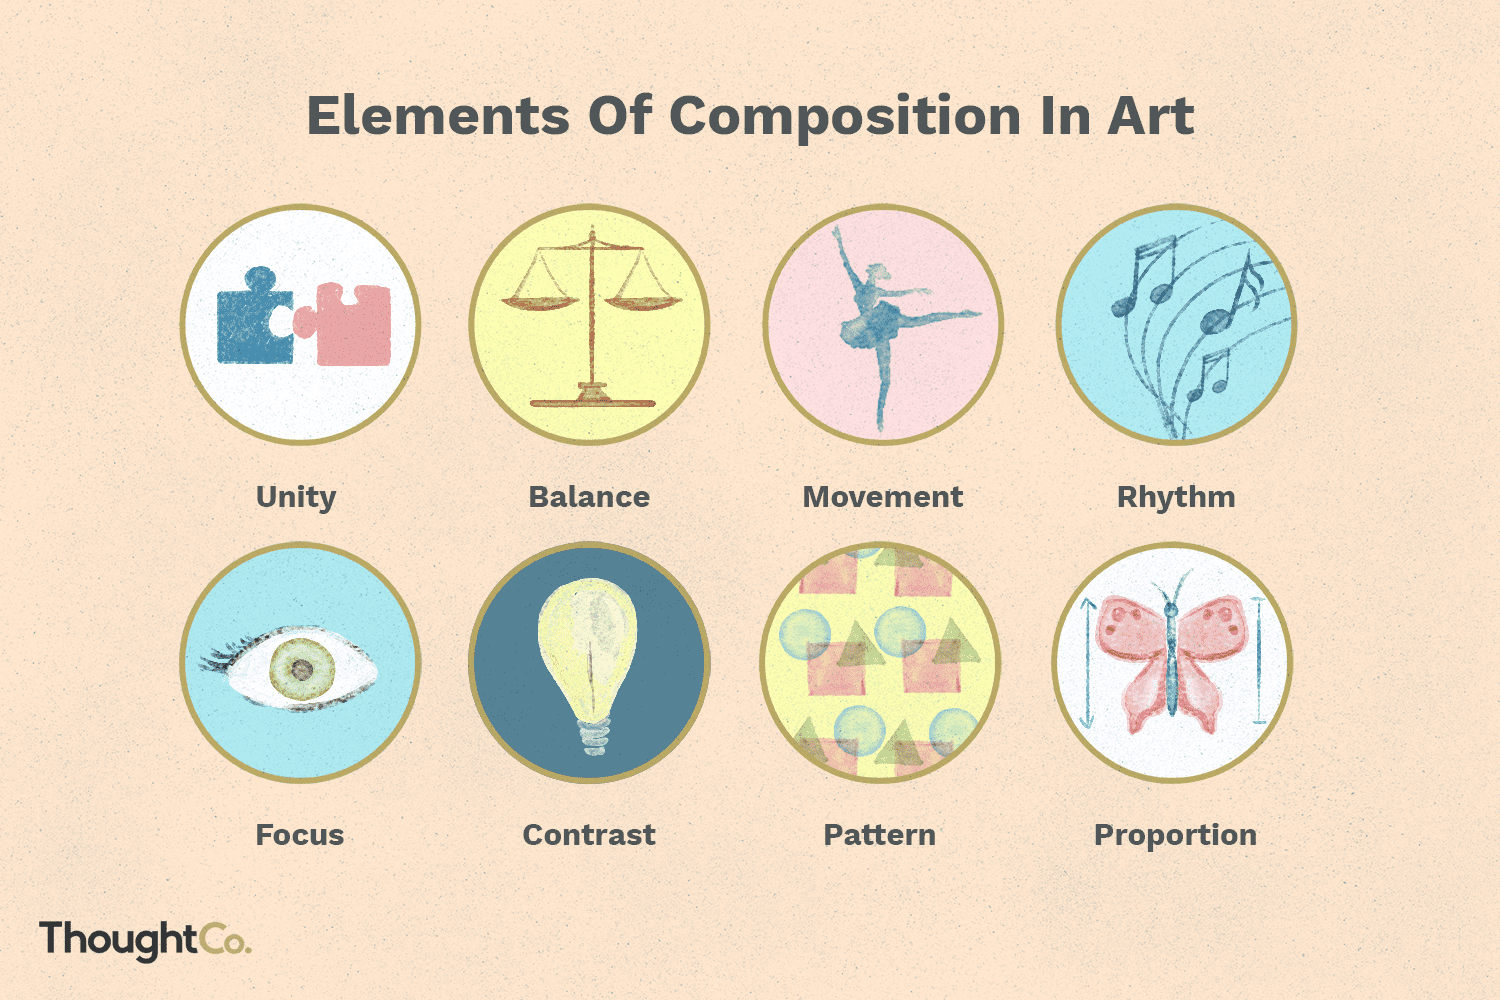 In Design Elements : The elements of composition in art